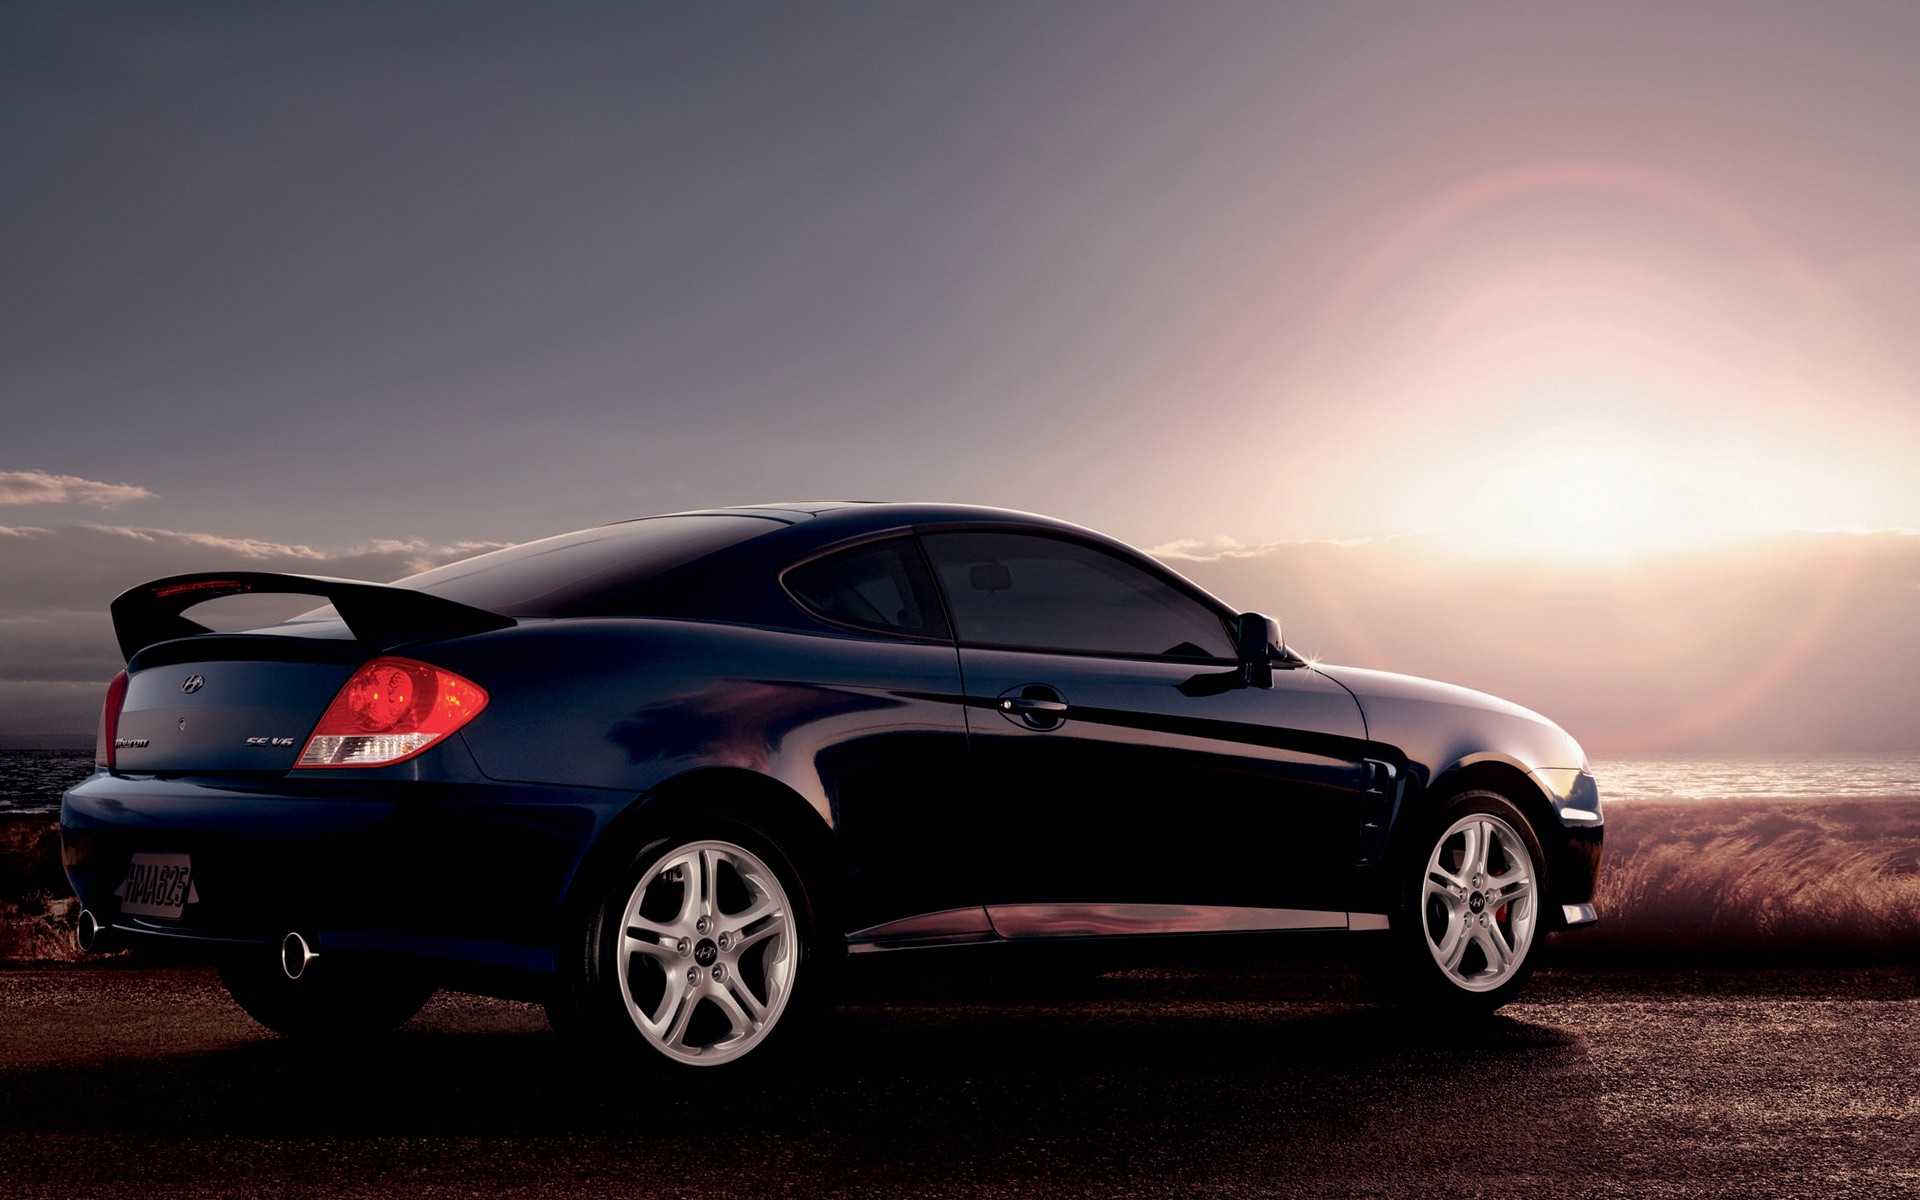 Hyundai Tiburon 27 V6 Photos Reviews News Specs Buy Car